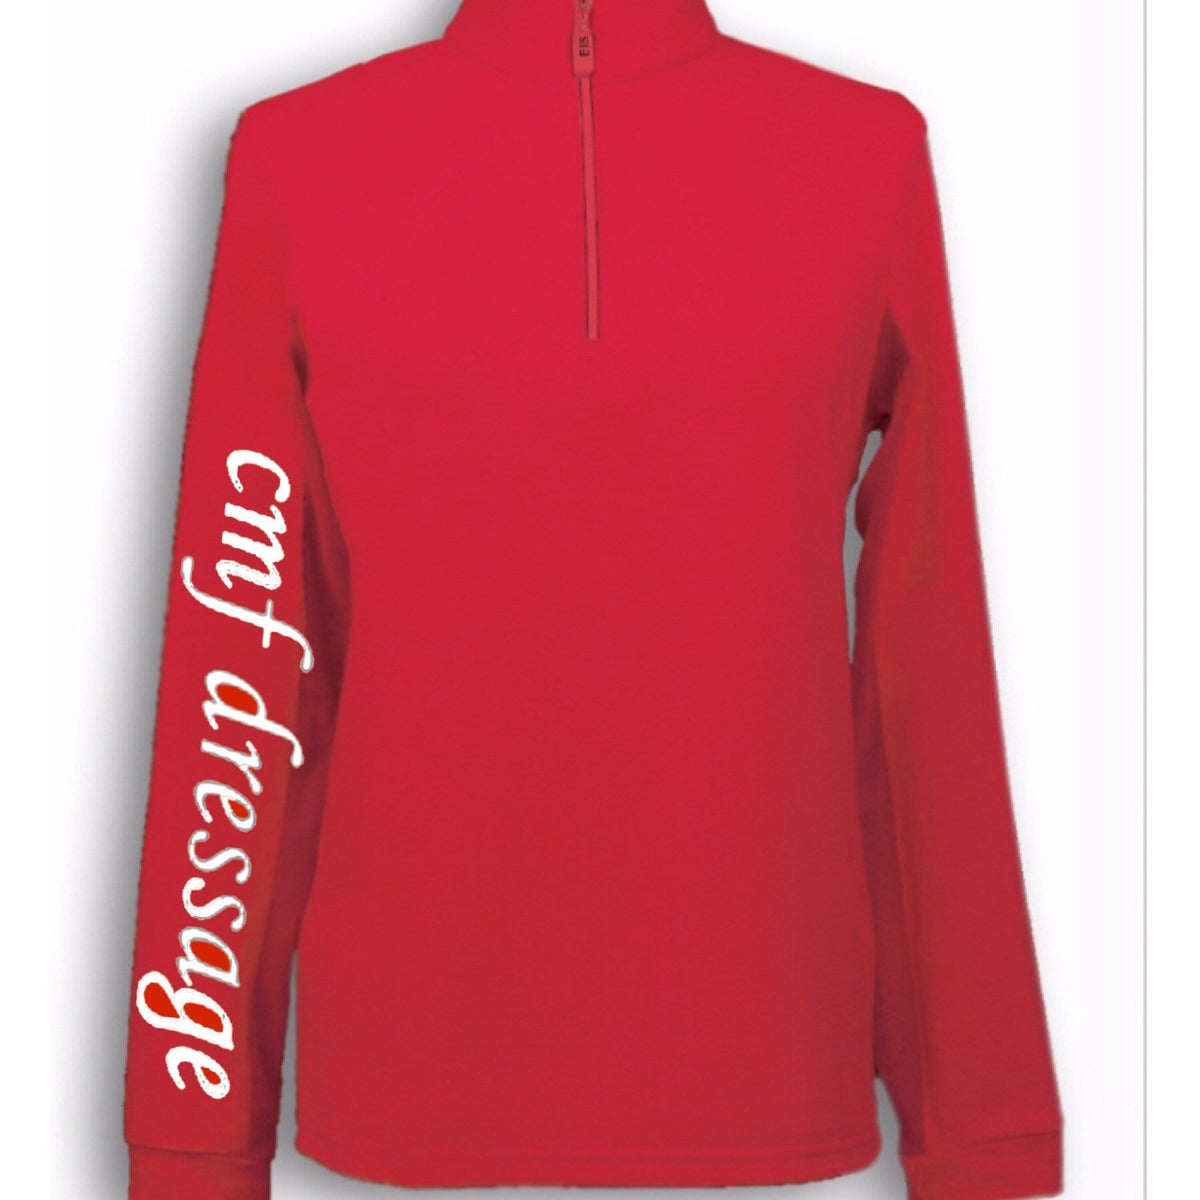 Equestrian Team Apparel Custom Team Shirts XS / Red CMF Dressage equestrian team apparel online tack store mobile tack store custom farm apparel custom show stable clothing equestrian lifestyle horse show clothing riding clothes horses equestrian tack store